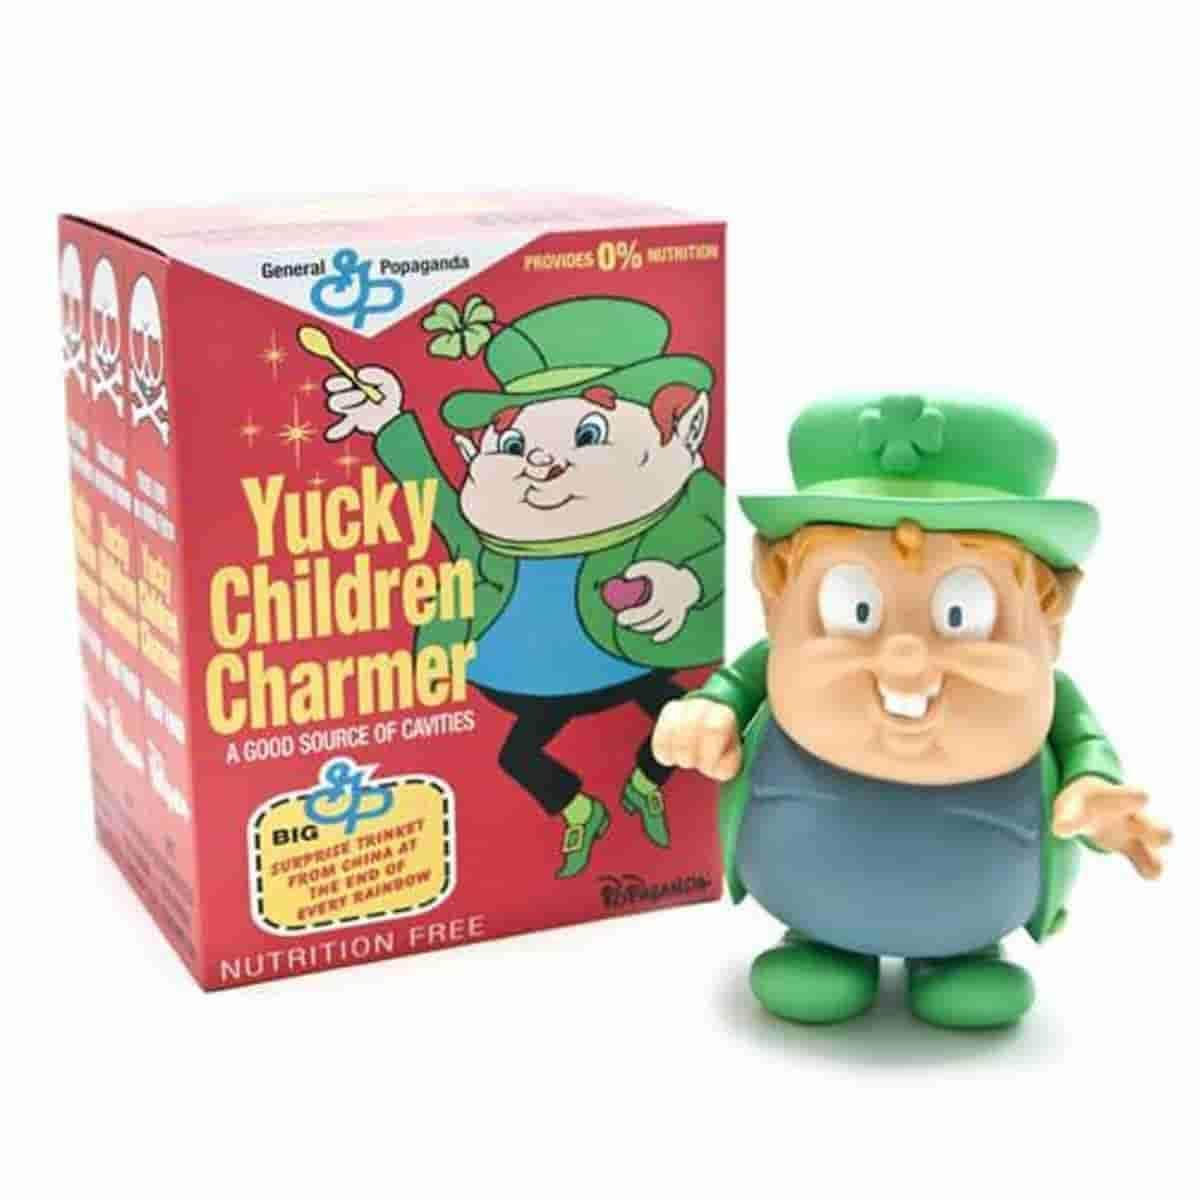 Yucky Children Charmer Cereal Killers by Ron English - IamRetro.com